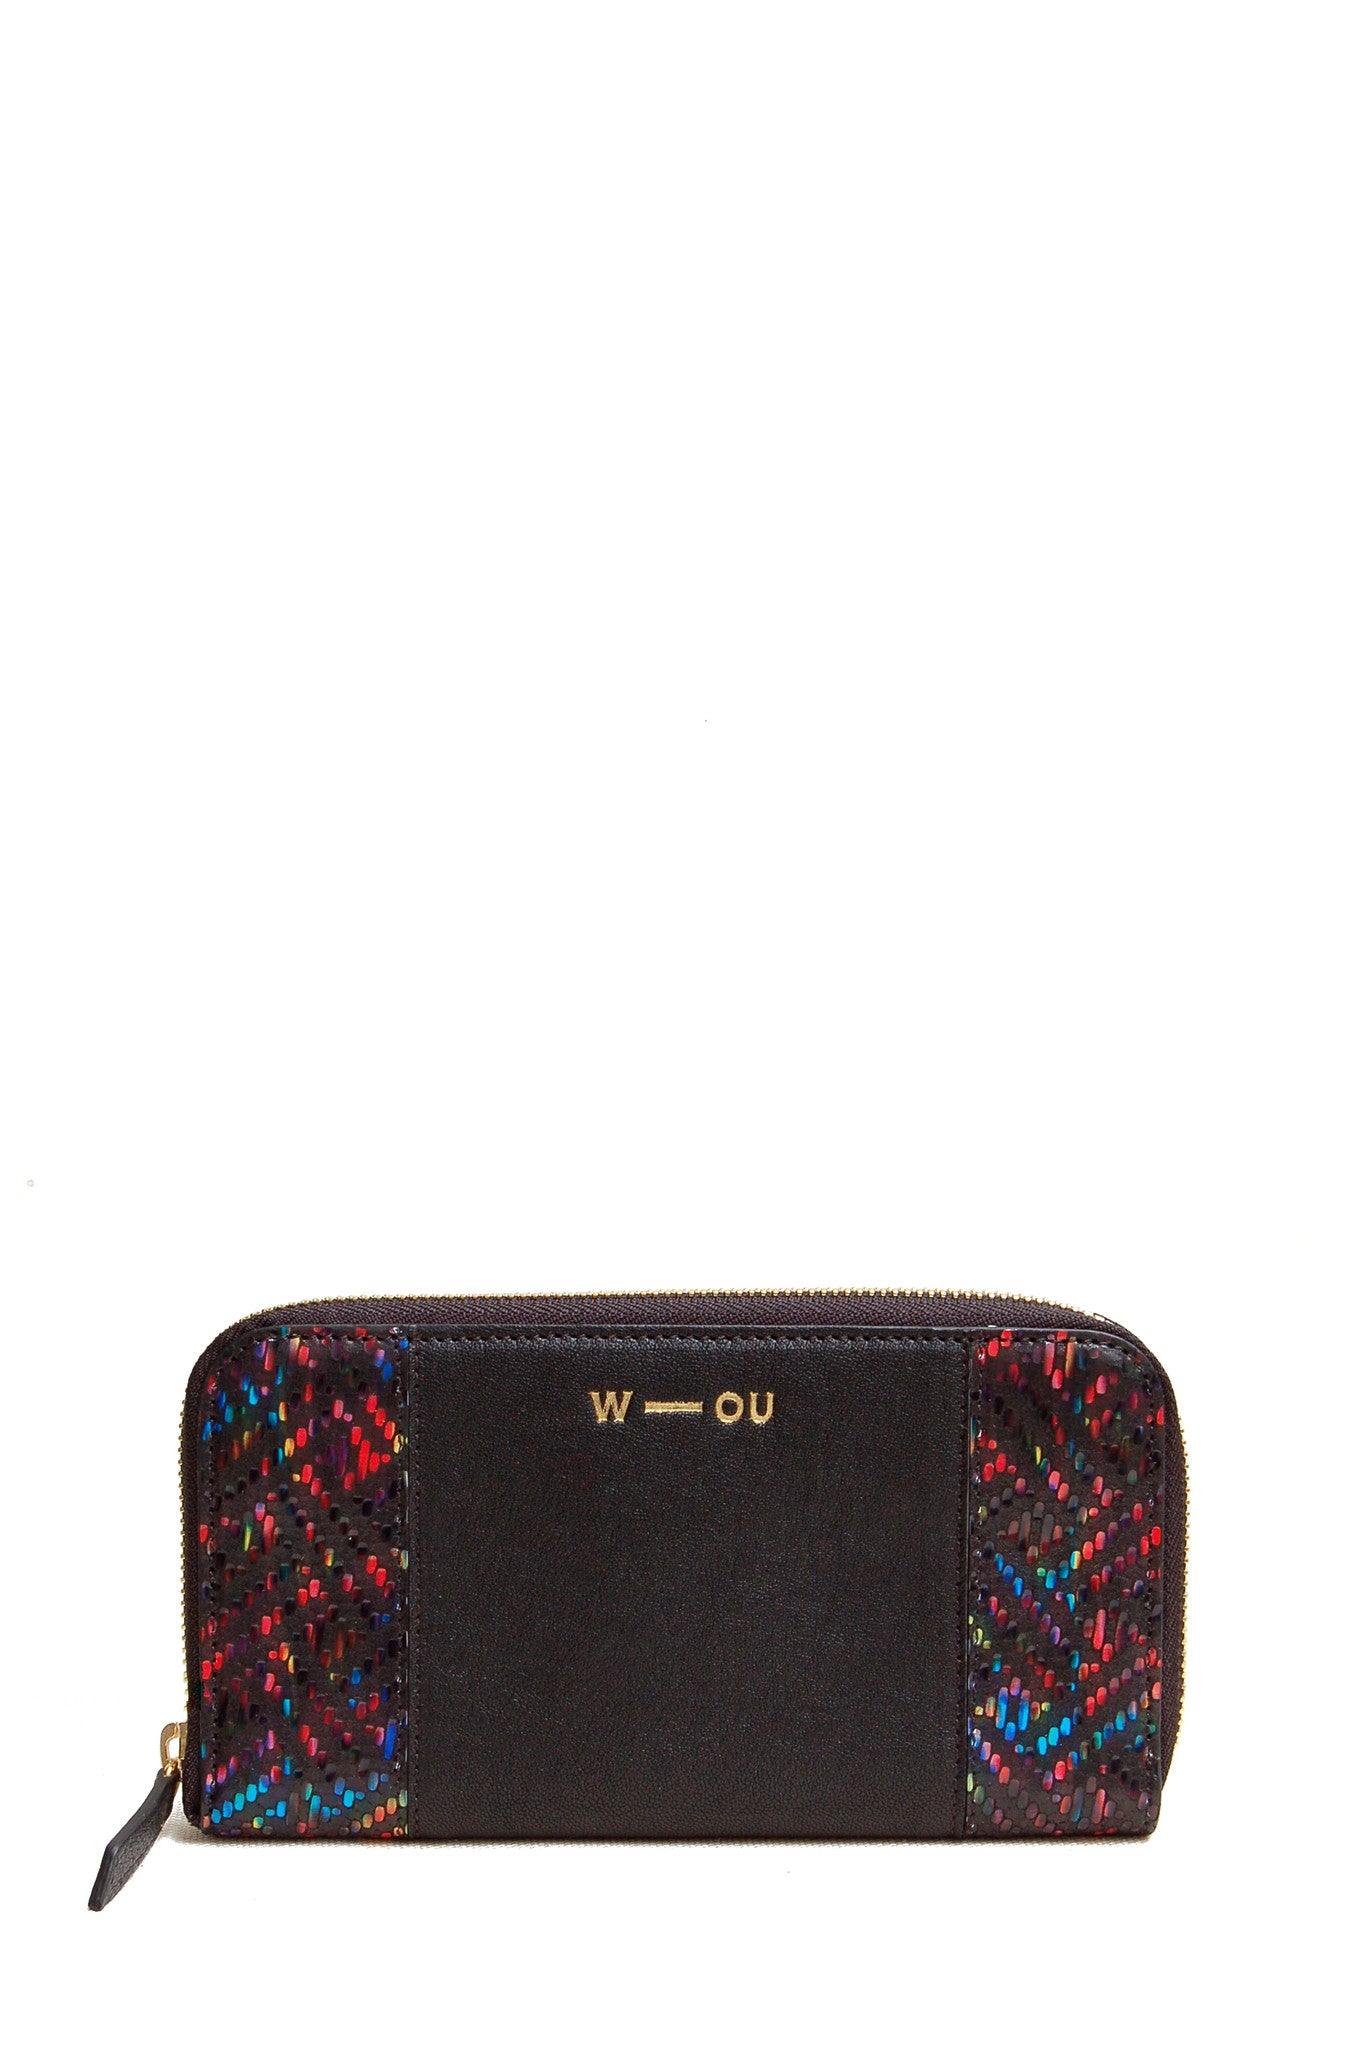 Wendee Ou: Georgie purse black rainbow | Accessories > Wallets,Accessories -  Hiphunters Shop